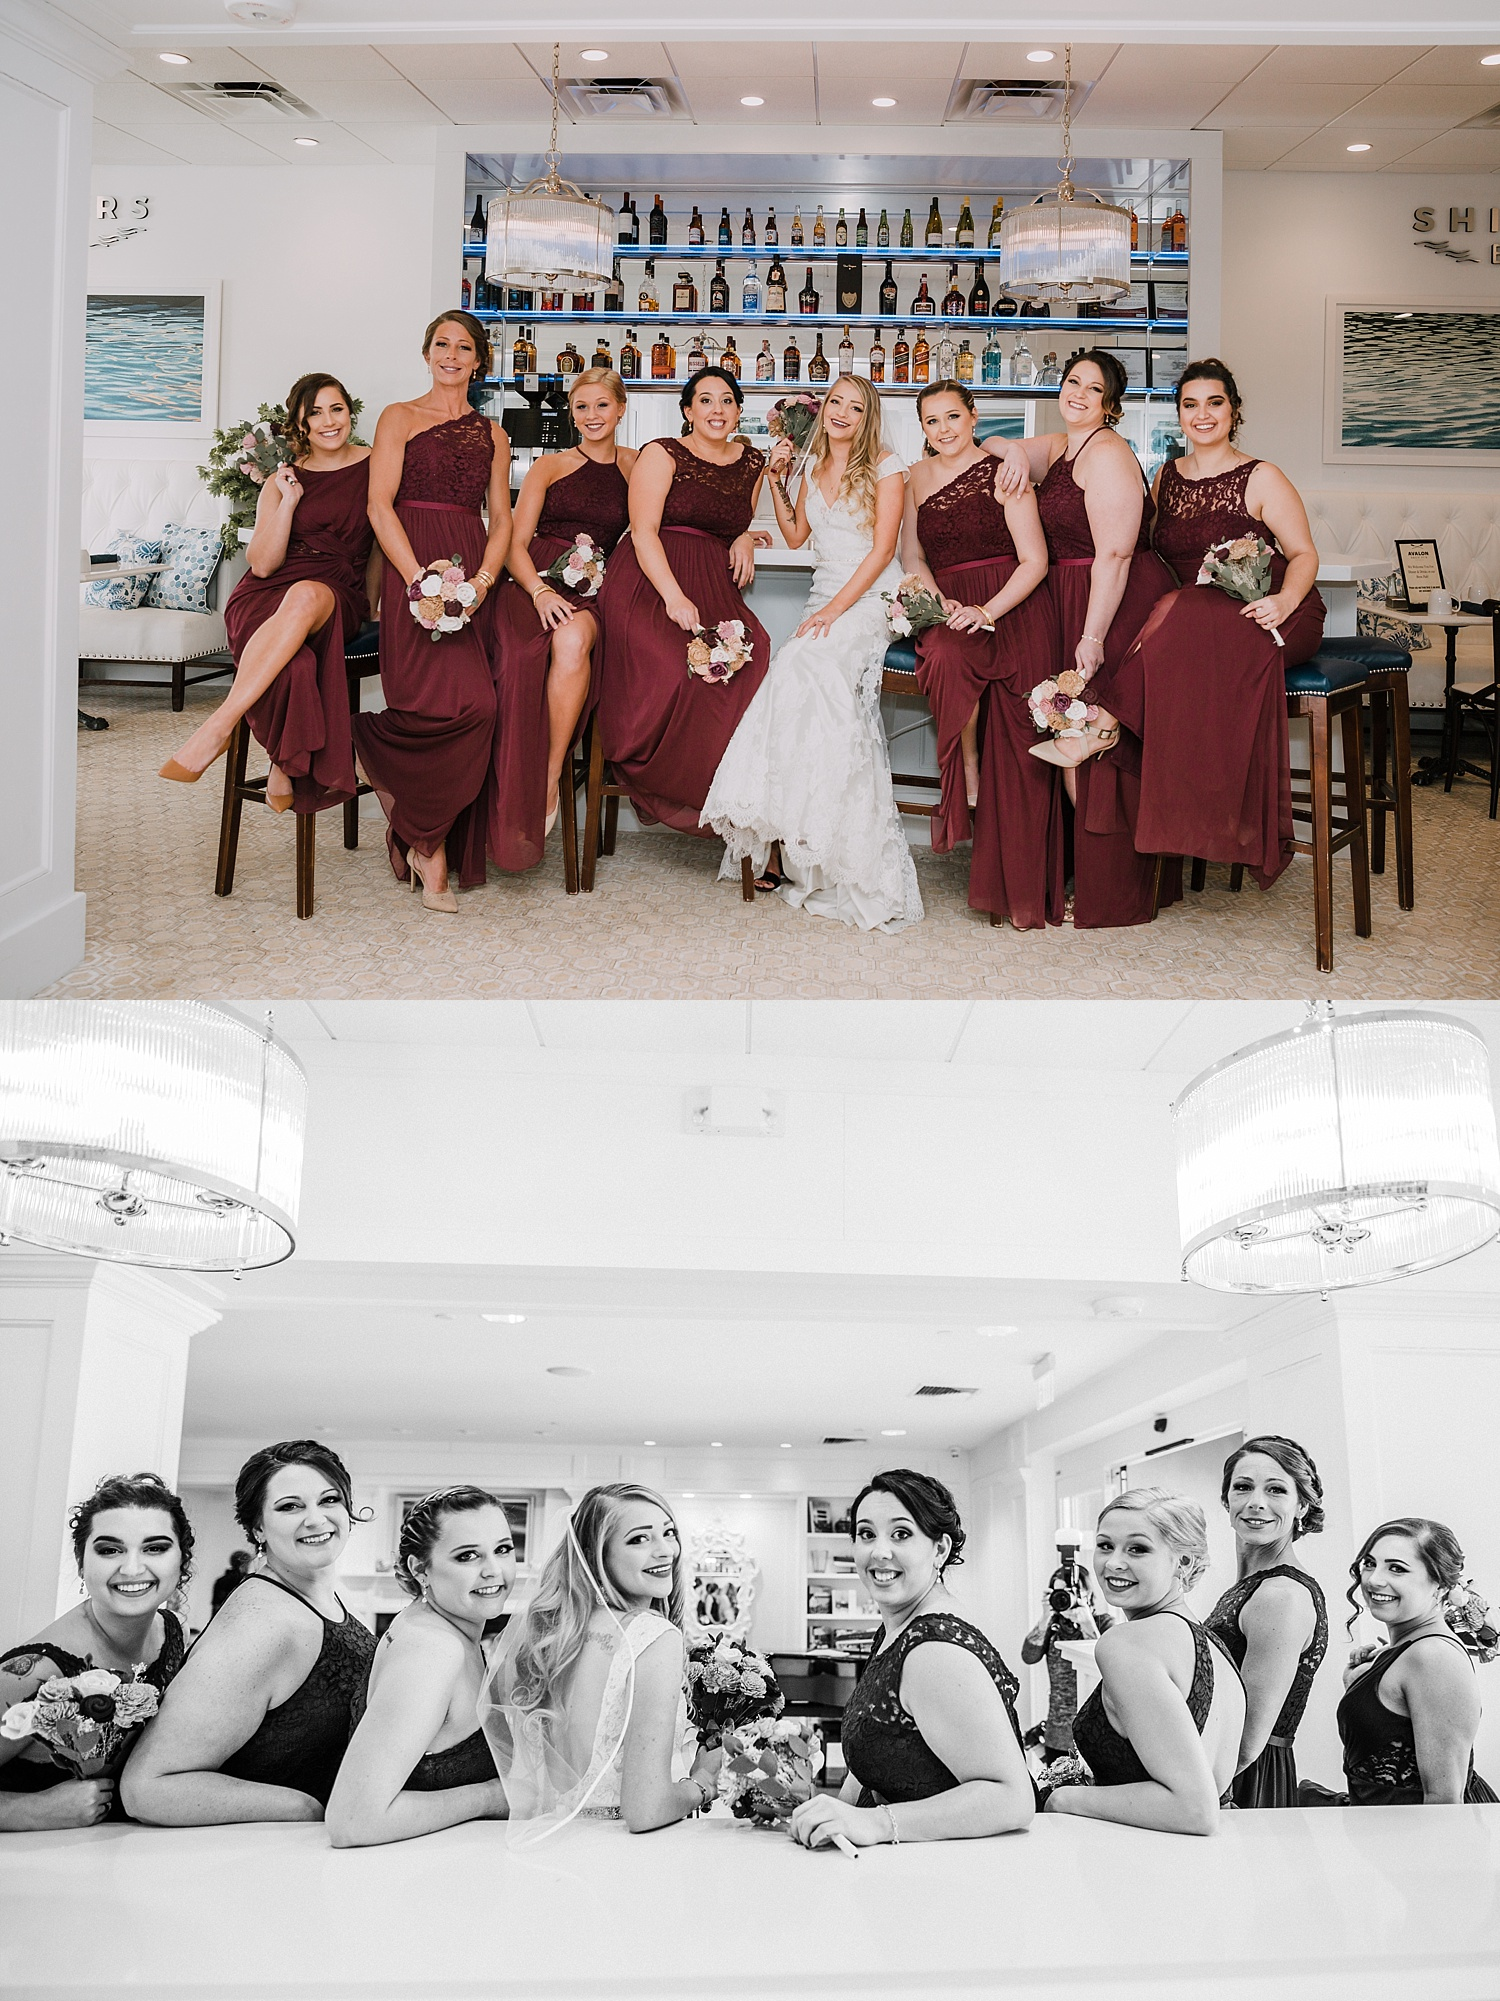 Icona Golden Inn Avalon New Jersey wedding photographer